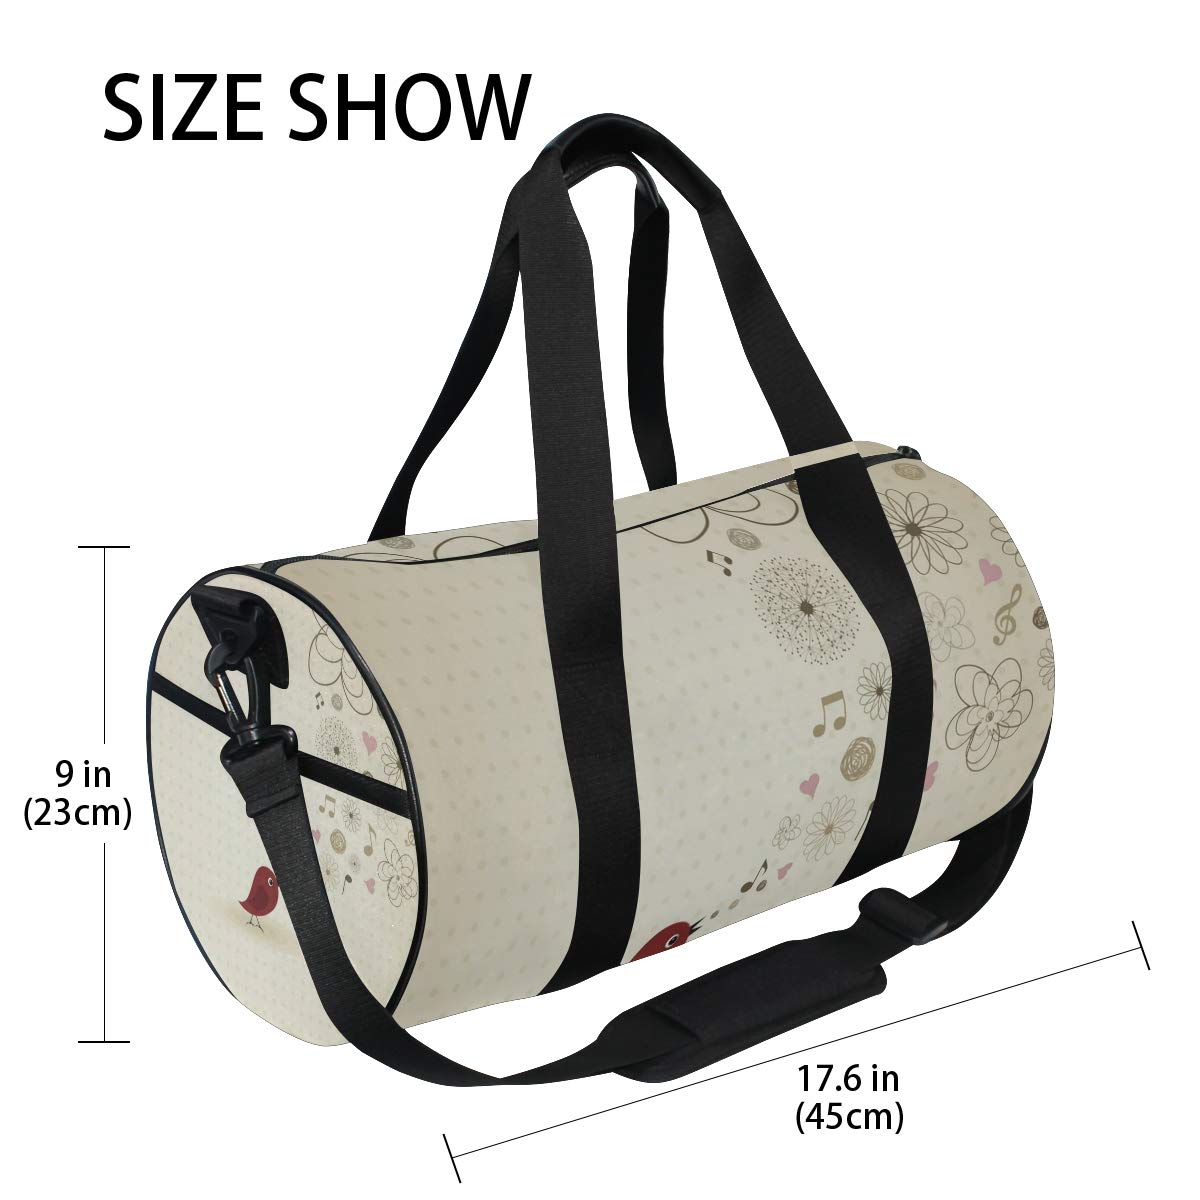 My  Music ImageWaterproof Non-Slip Wearable Crossbody Bag fitness bag Shoulder Bag